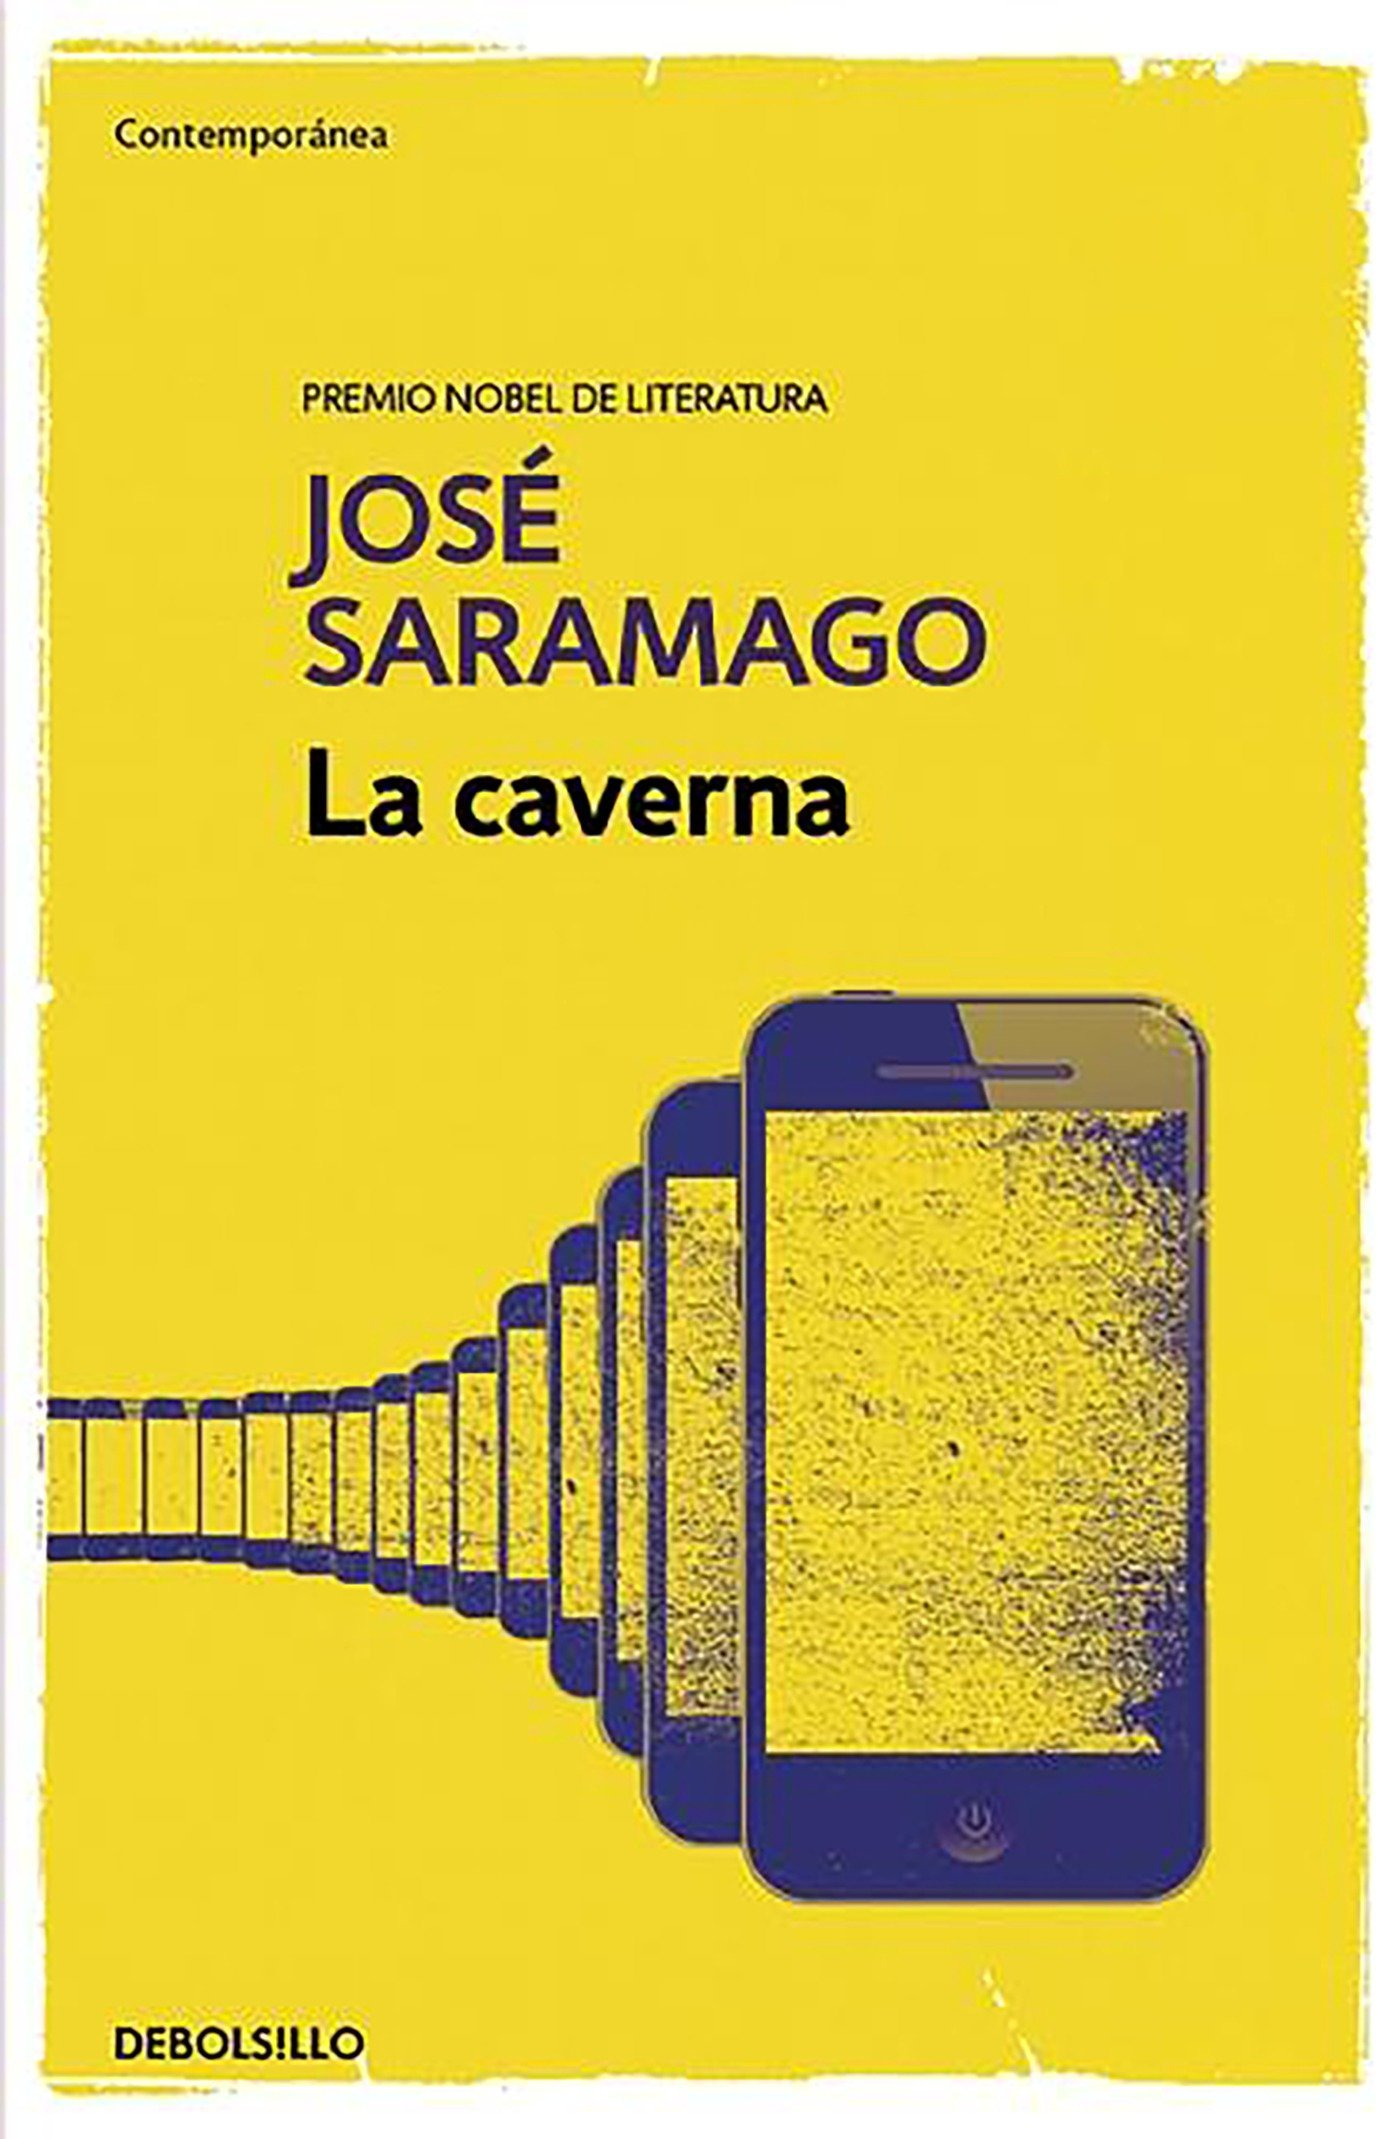 Amazon.com: La caverna / The Cave (Contemporanea) (Spanish Edition) (9788490628744): Jose Saramago: Books